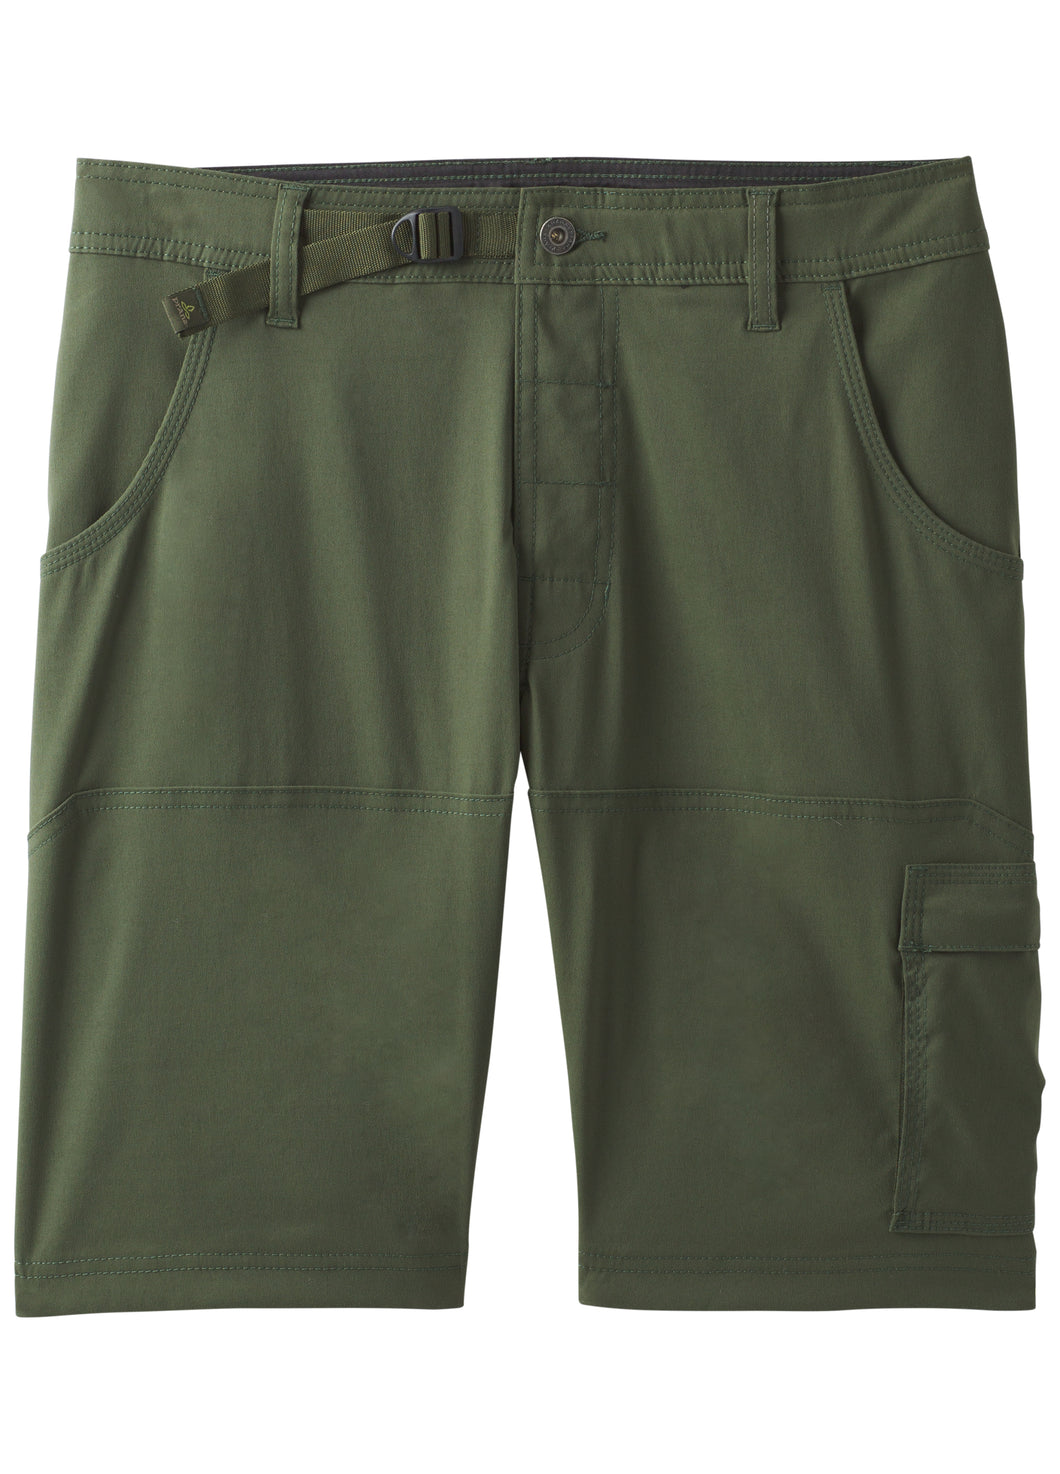 Stretch Zion Short 10